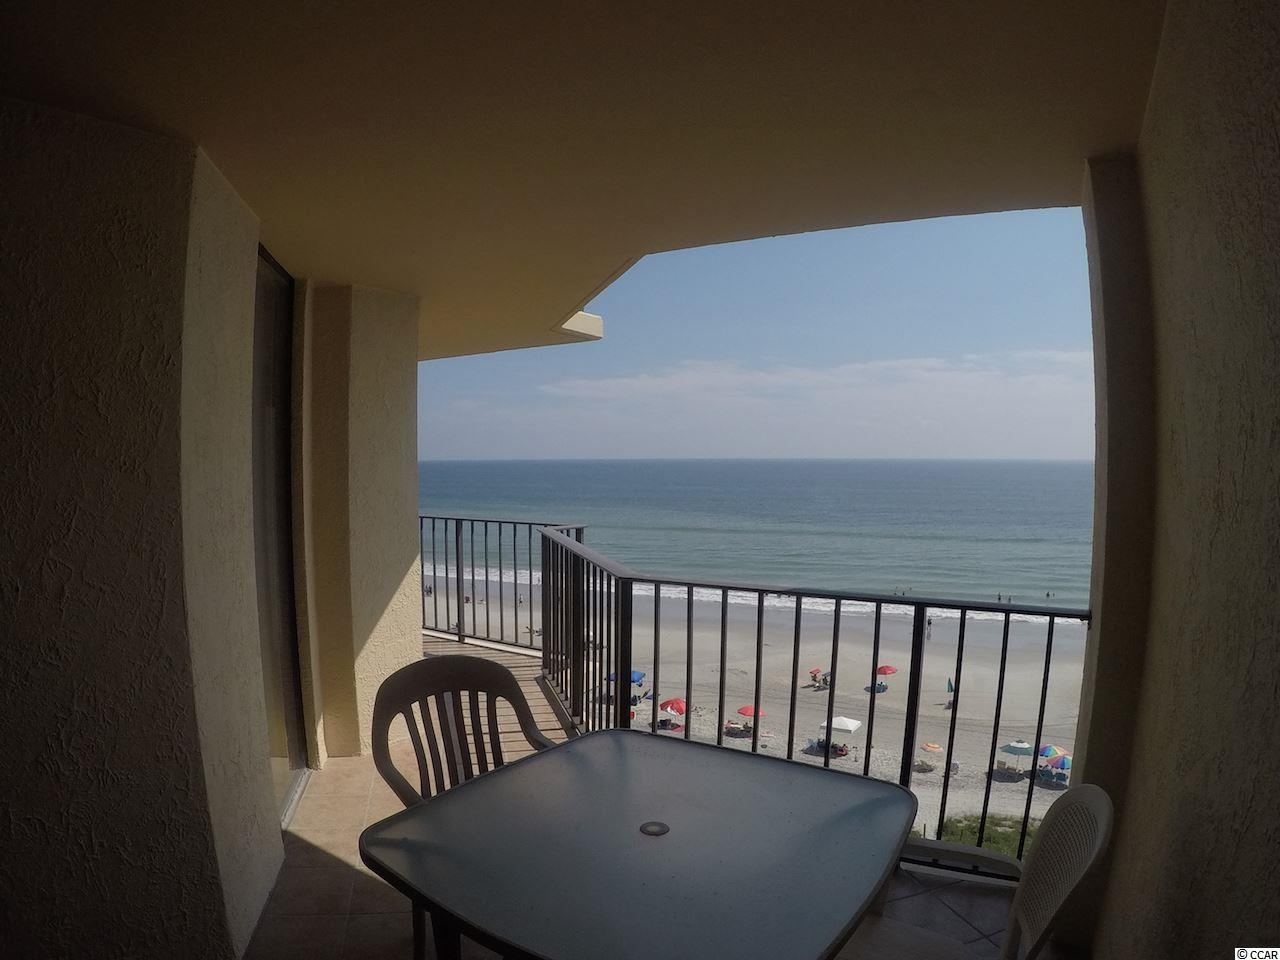 This 3 bedroom condo at  The Summit is currently for sale